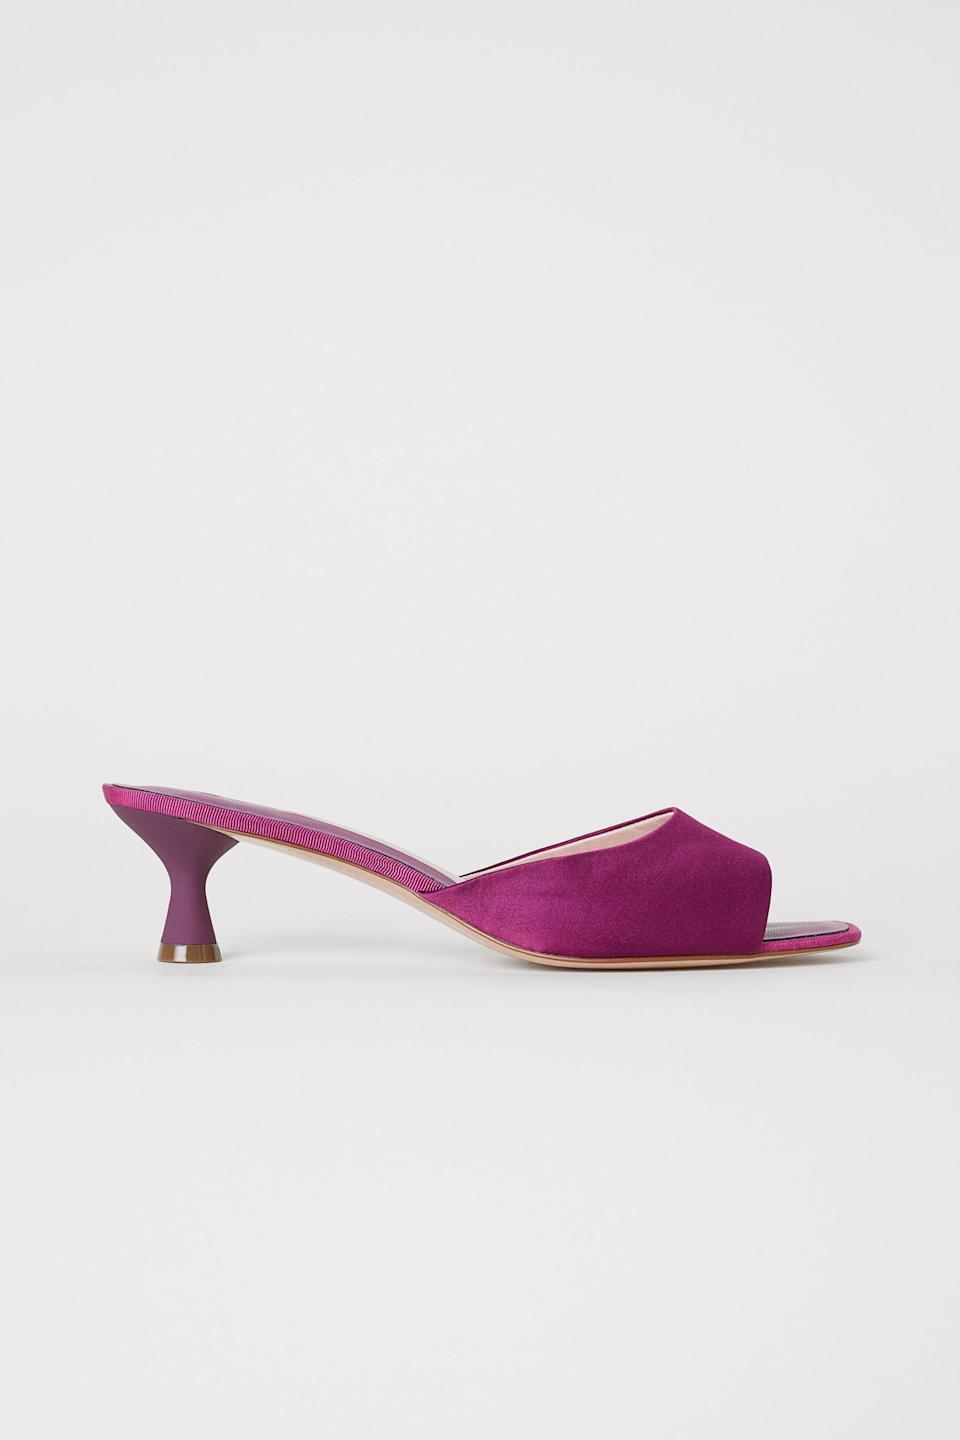 I'm obsessed with this heel shape and color. Available in sizes 4.5 to 10.